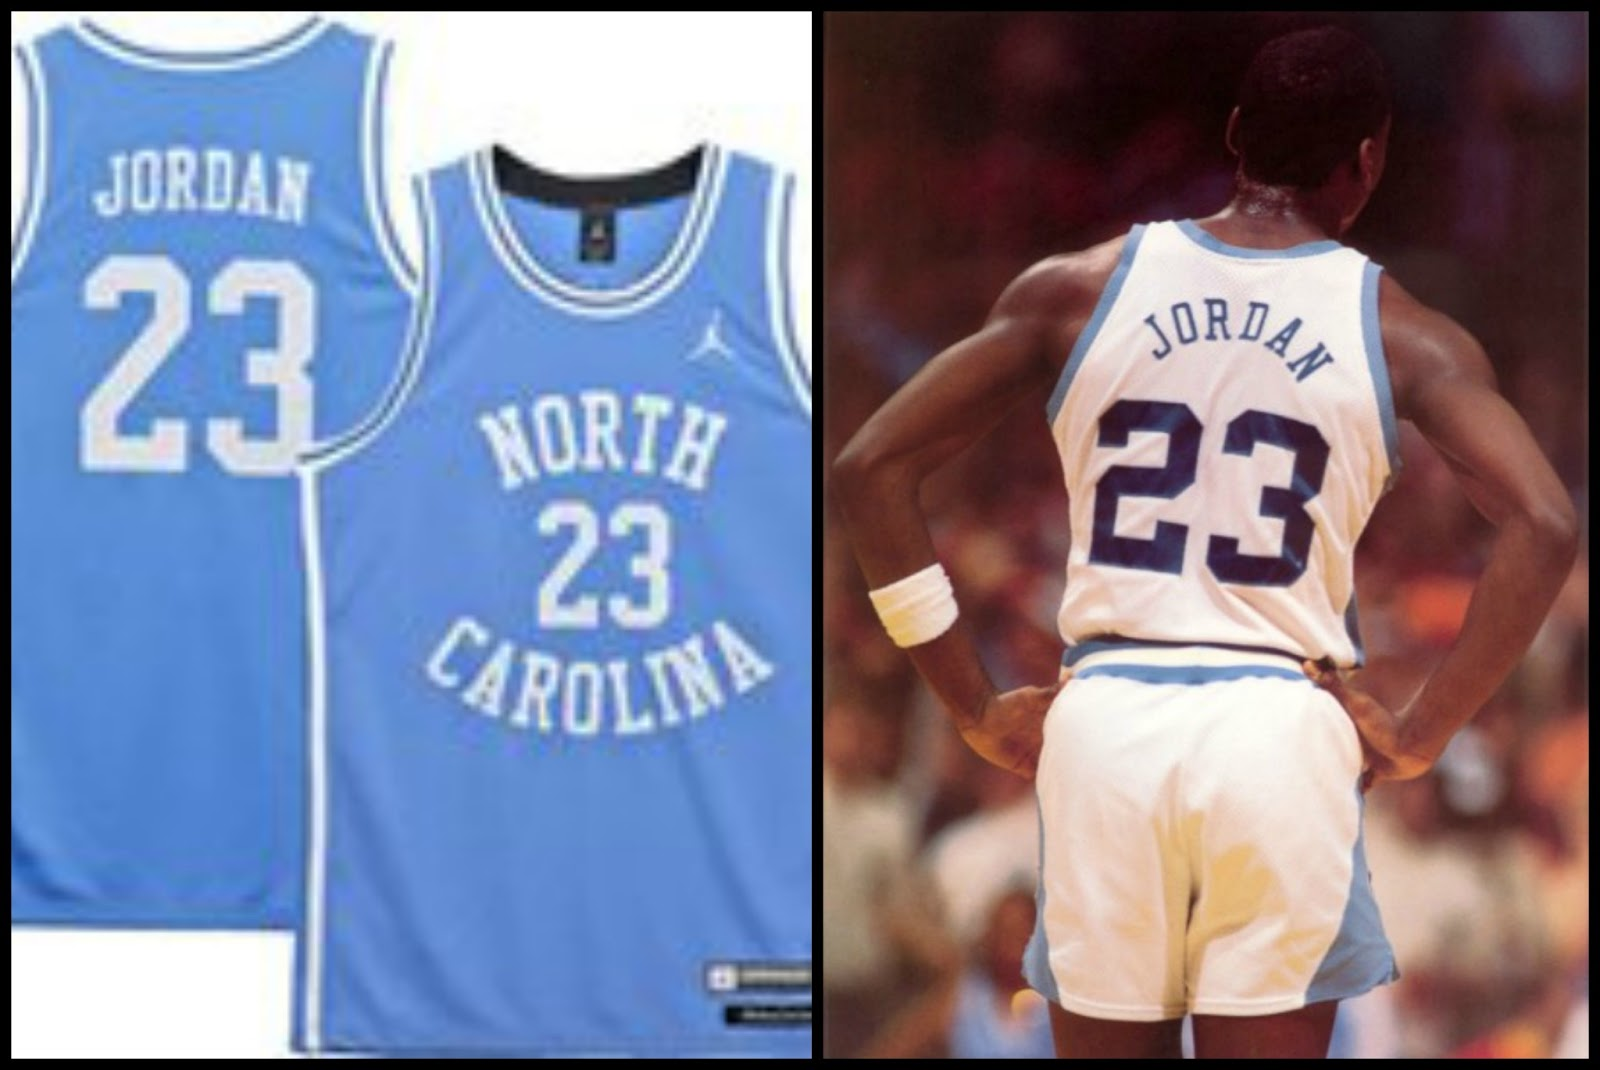 Tru School Sports: The Top 5 must have College Basketball jerseys